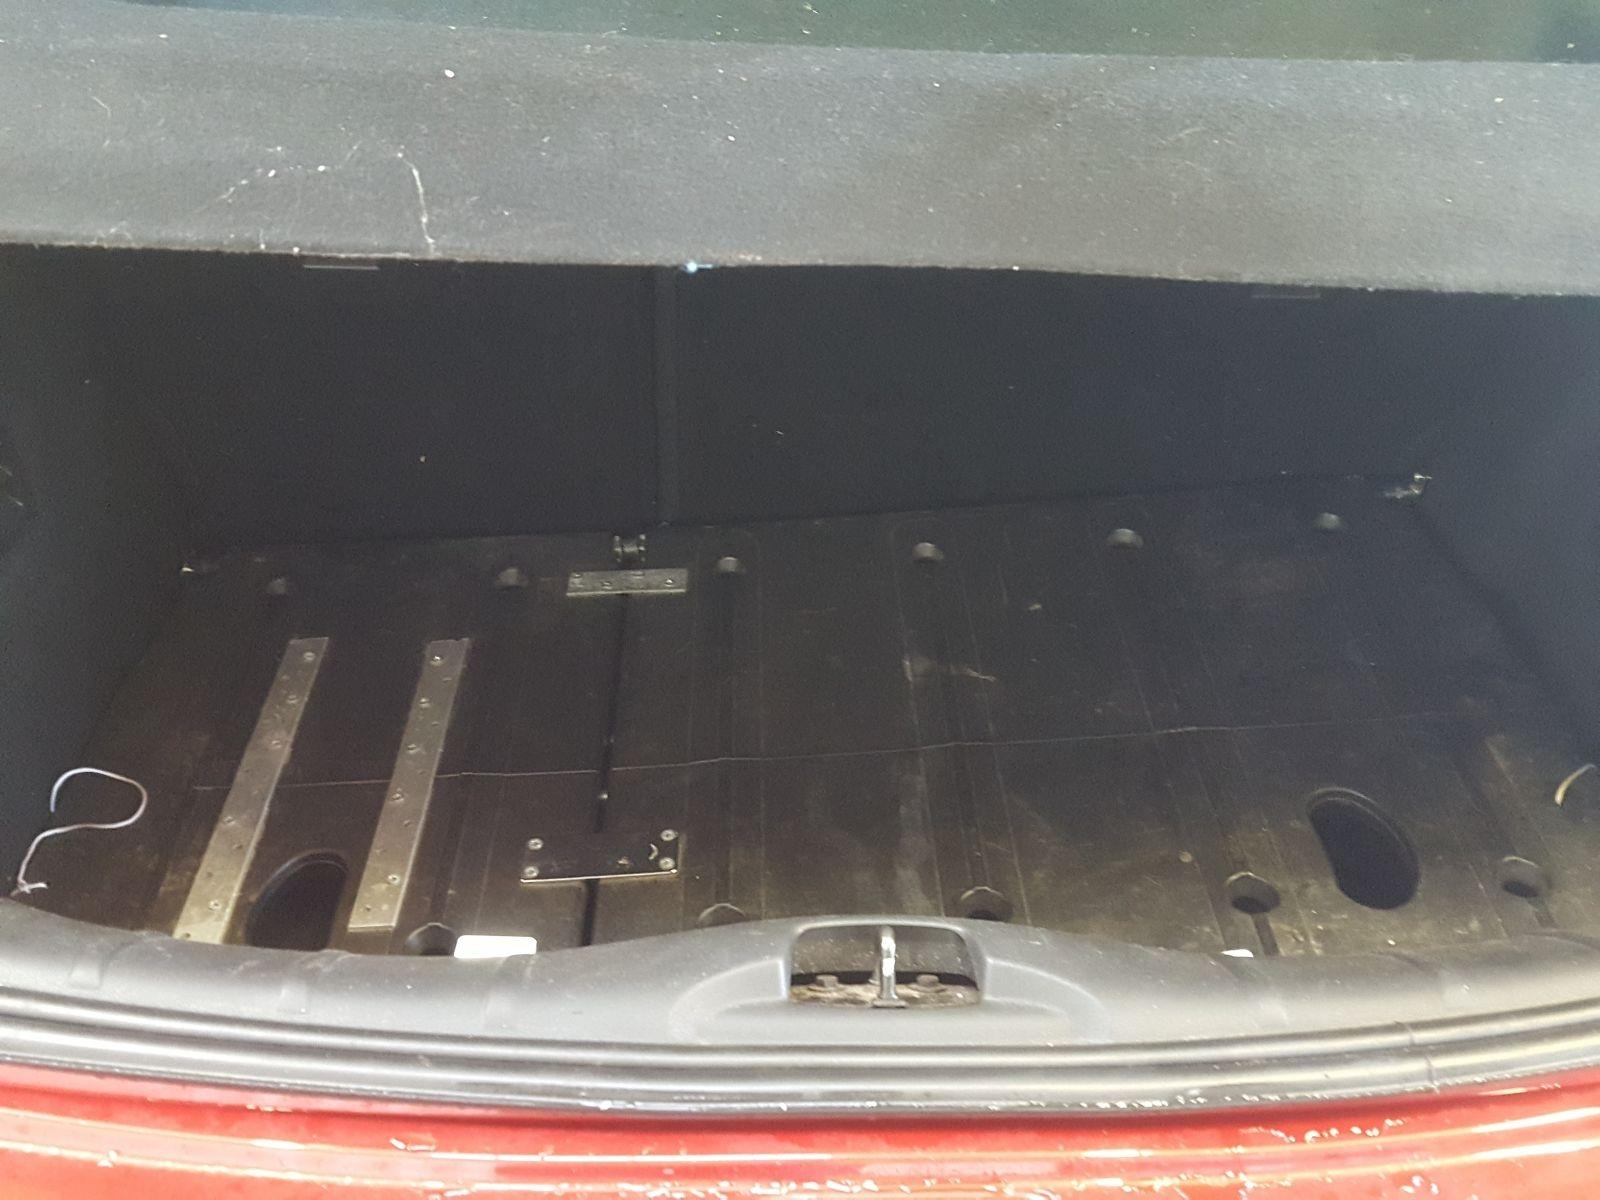 hight resolution of citroen c3 2010 to 2013 vtr fuse box used and spare parts at combellack vehicle recyclers